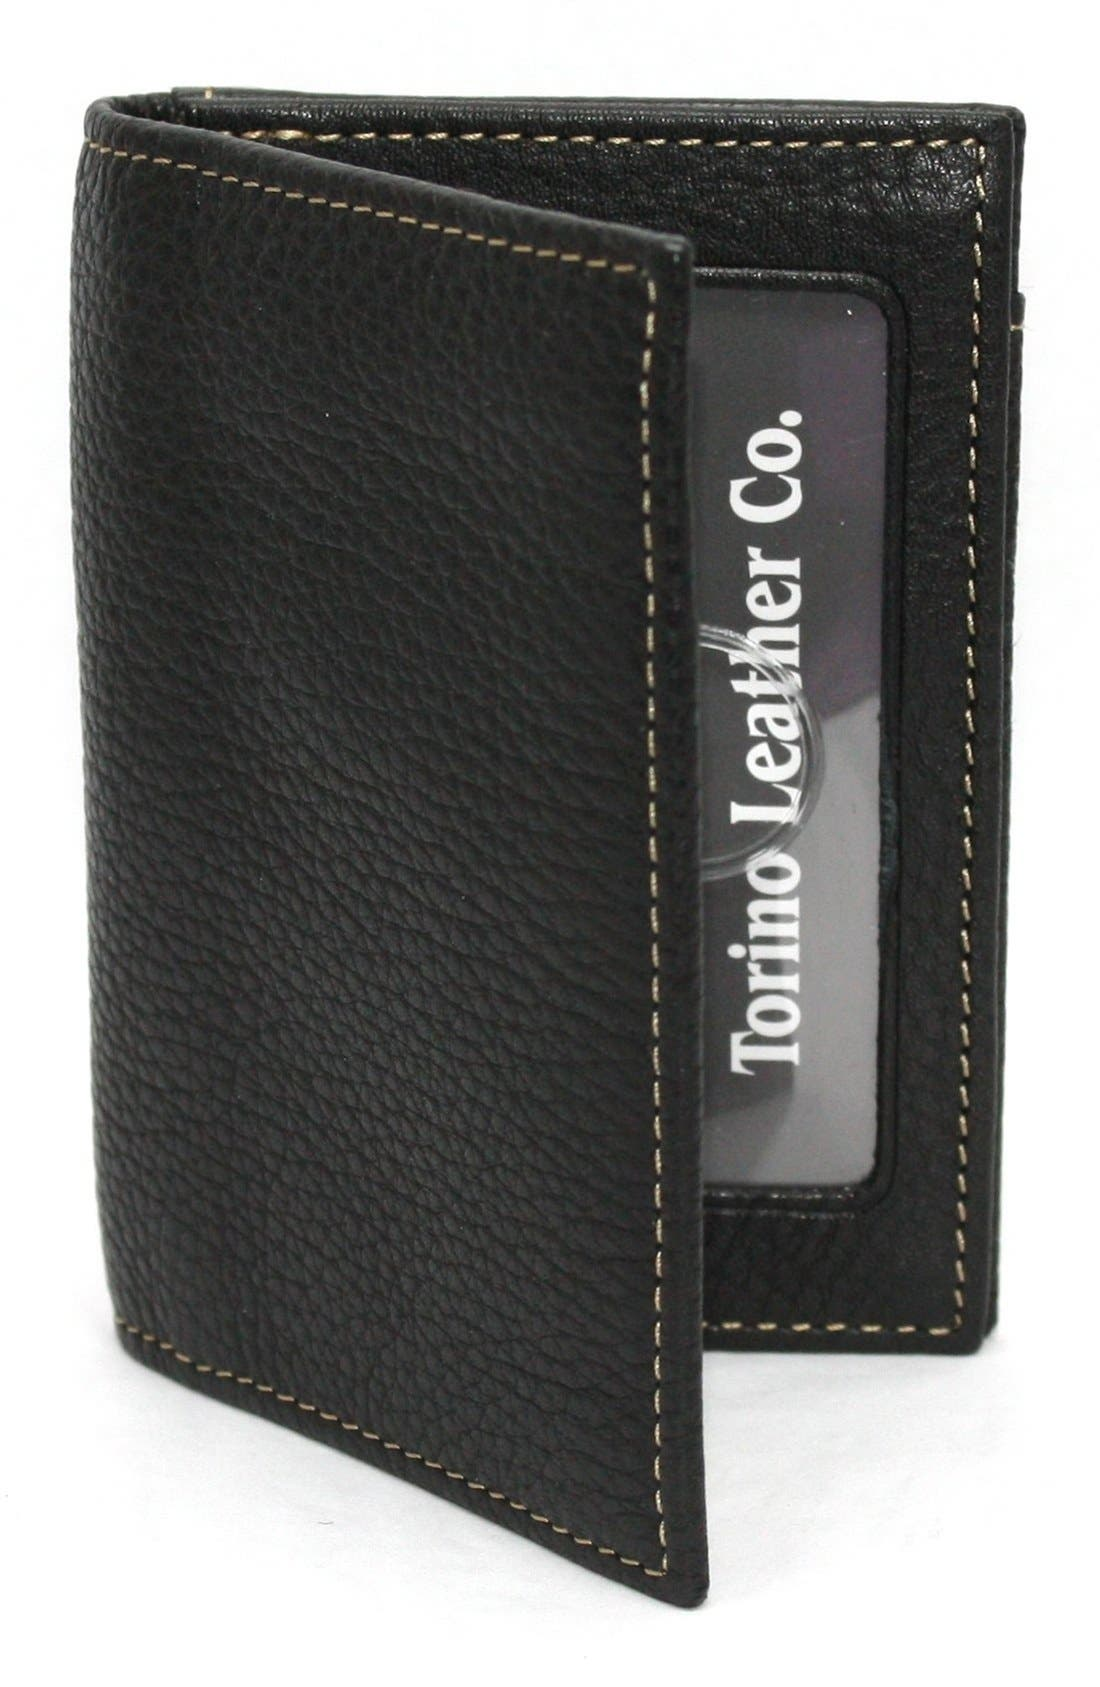 Alternate Image 1 Selected - Torino Belts Leather Card Case